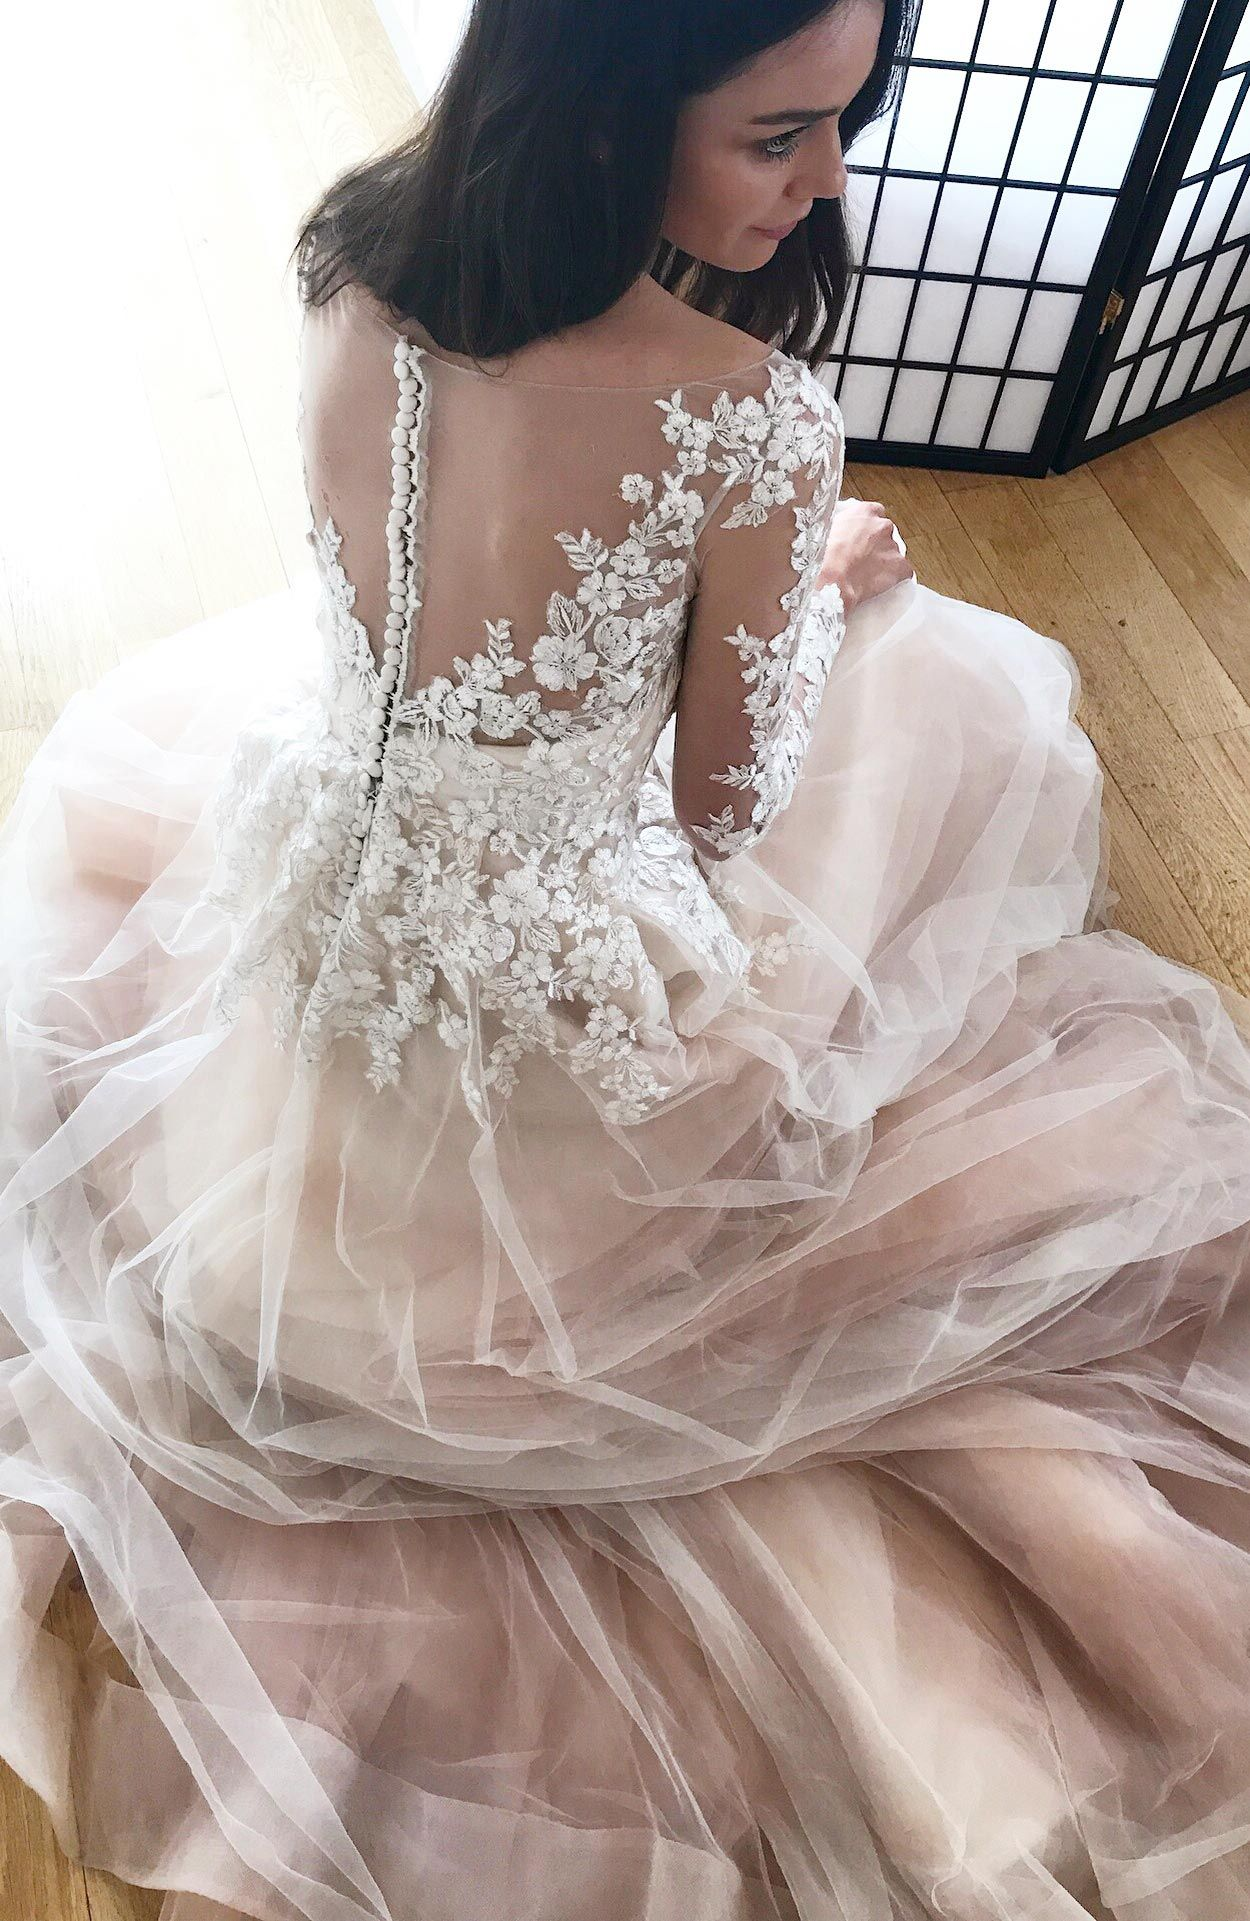 Alba Blush pink wedding dress, Wedding dresses, Lace